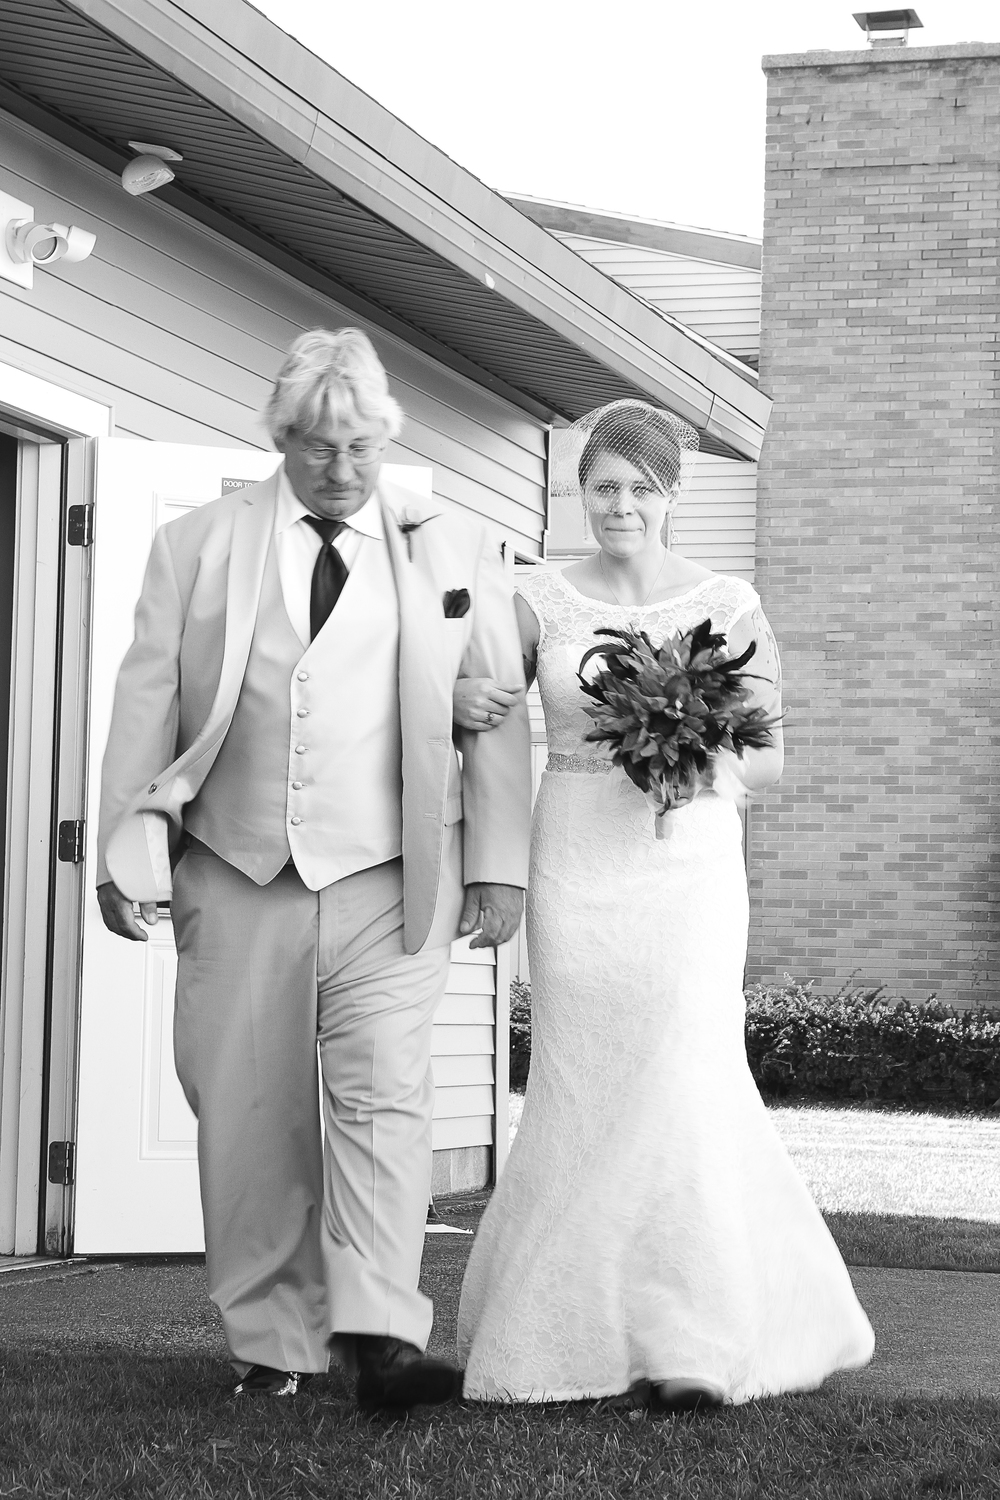 The bride and her dad on their way to the aisle. © 2014 Shealyn McGee-Sarns